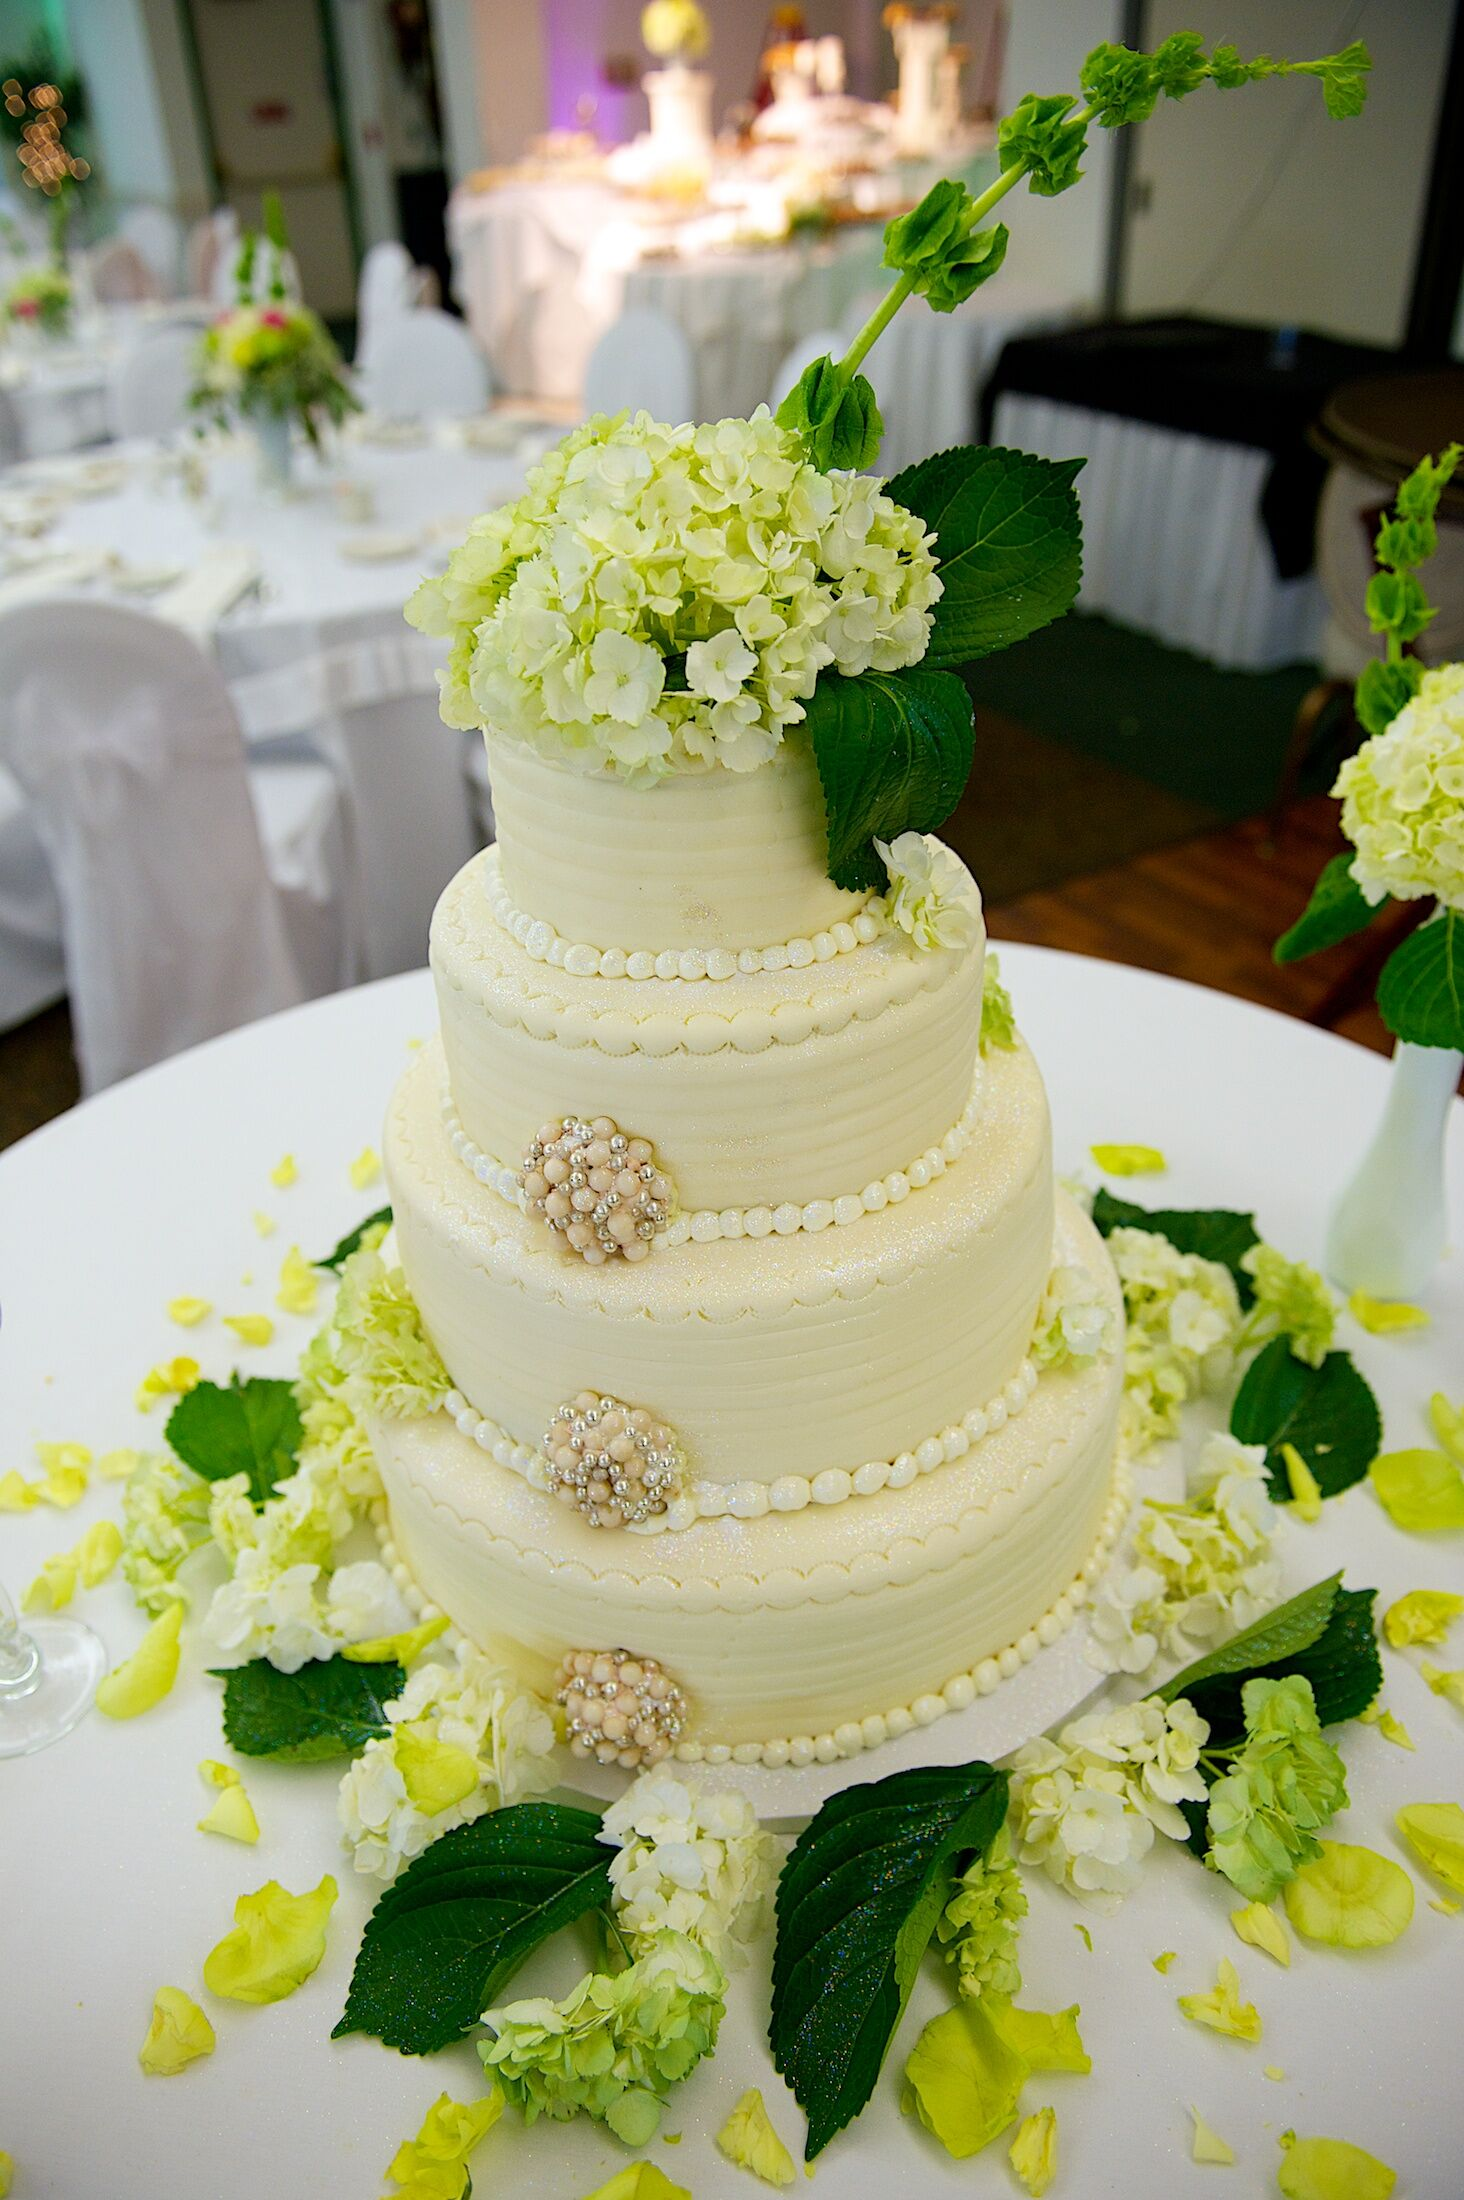 Wedding Cake Bakeries in Cleveland, OH - The Knot